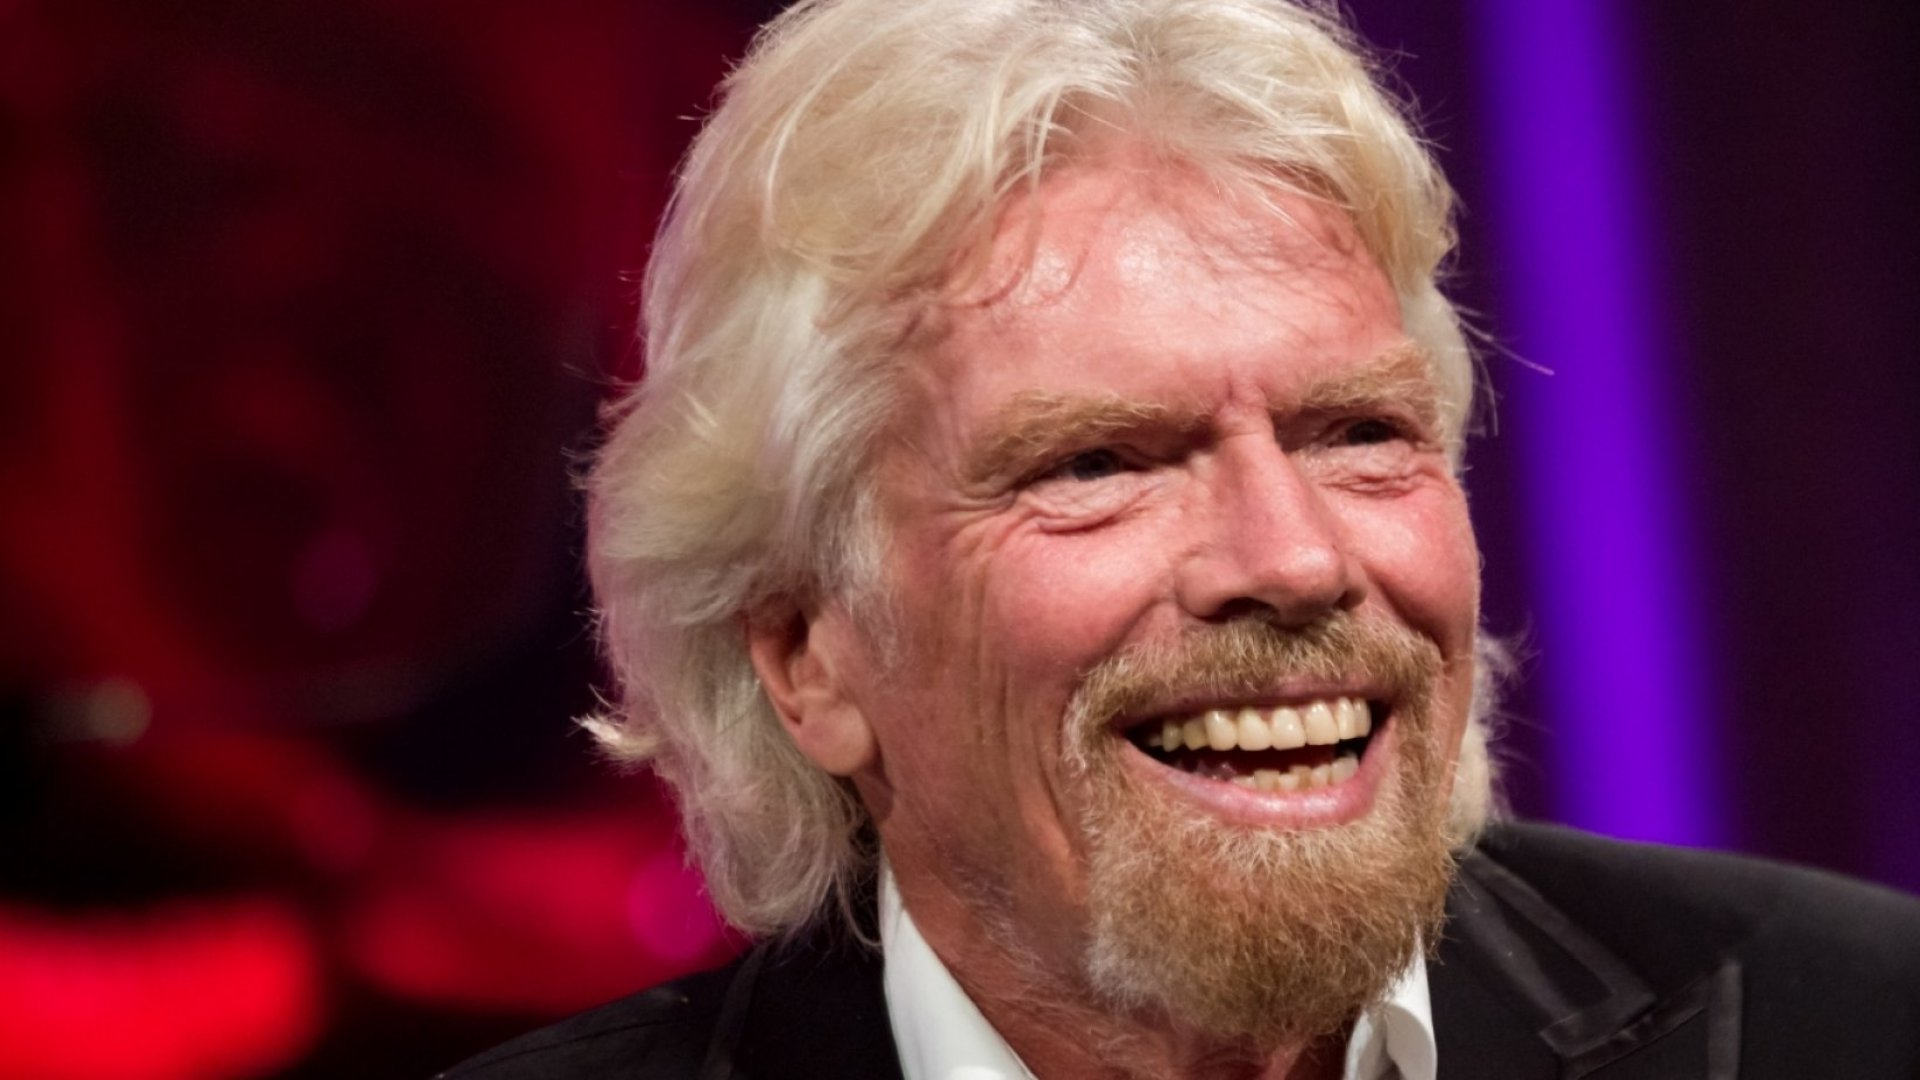 Sir Richard Branson shows his genuineness by being vulnerable and approachable.